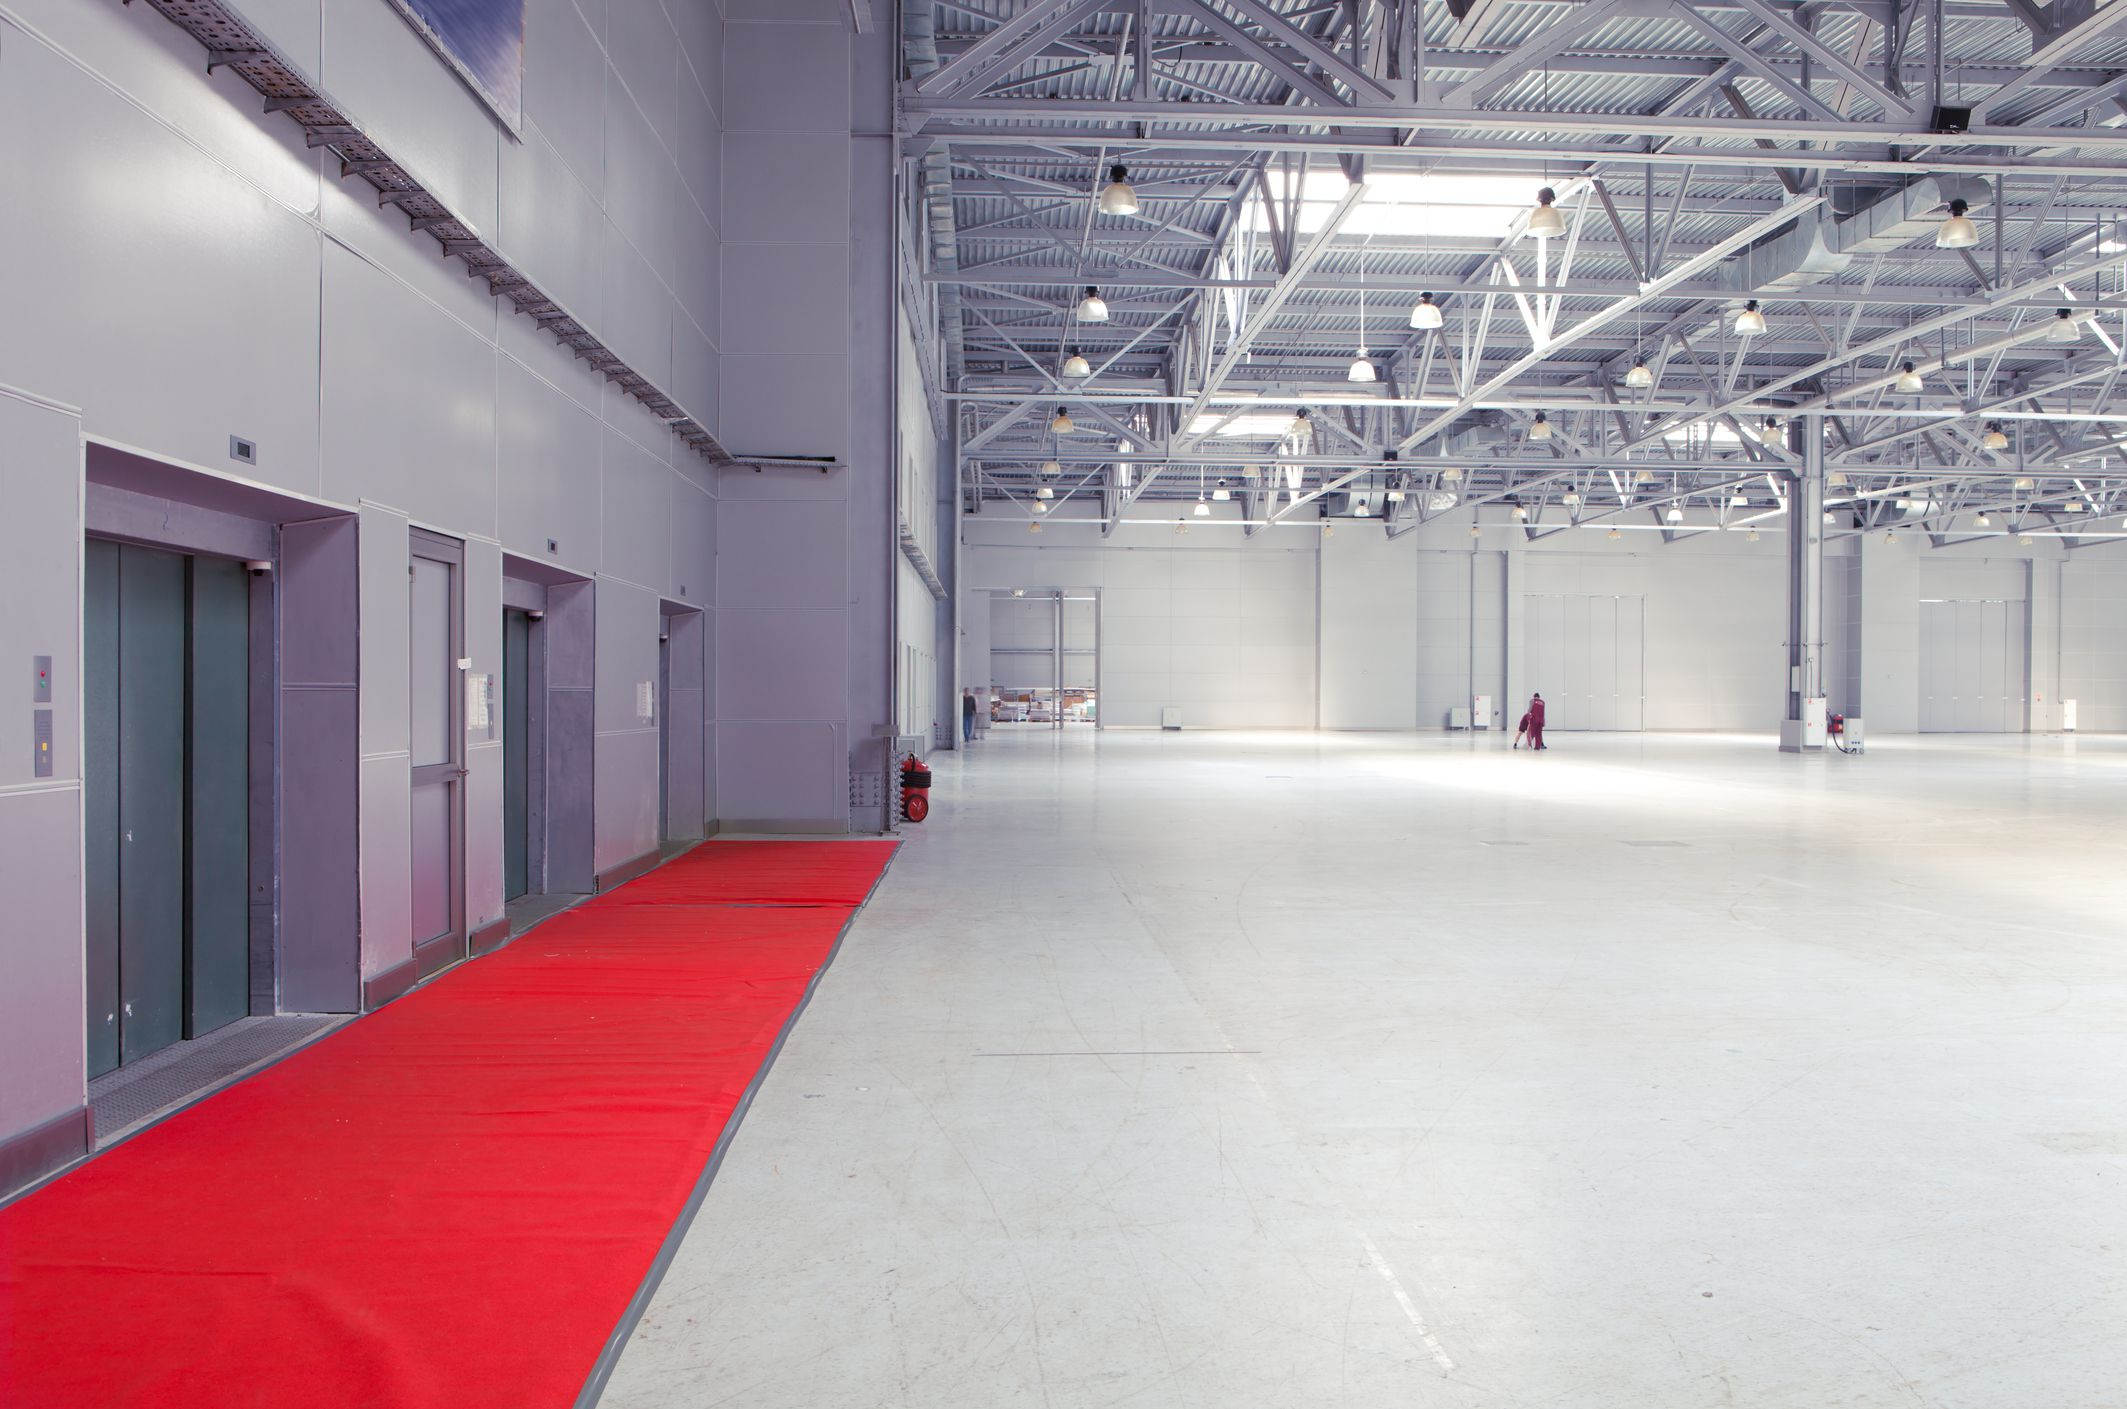 Paint Platoon USA Specializes In Painting Warehouse Interior, Ceilings And  Floors.